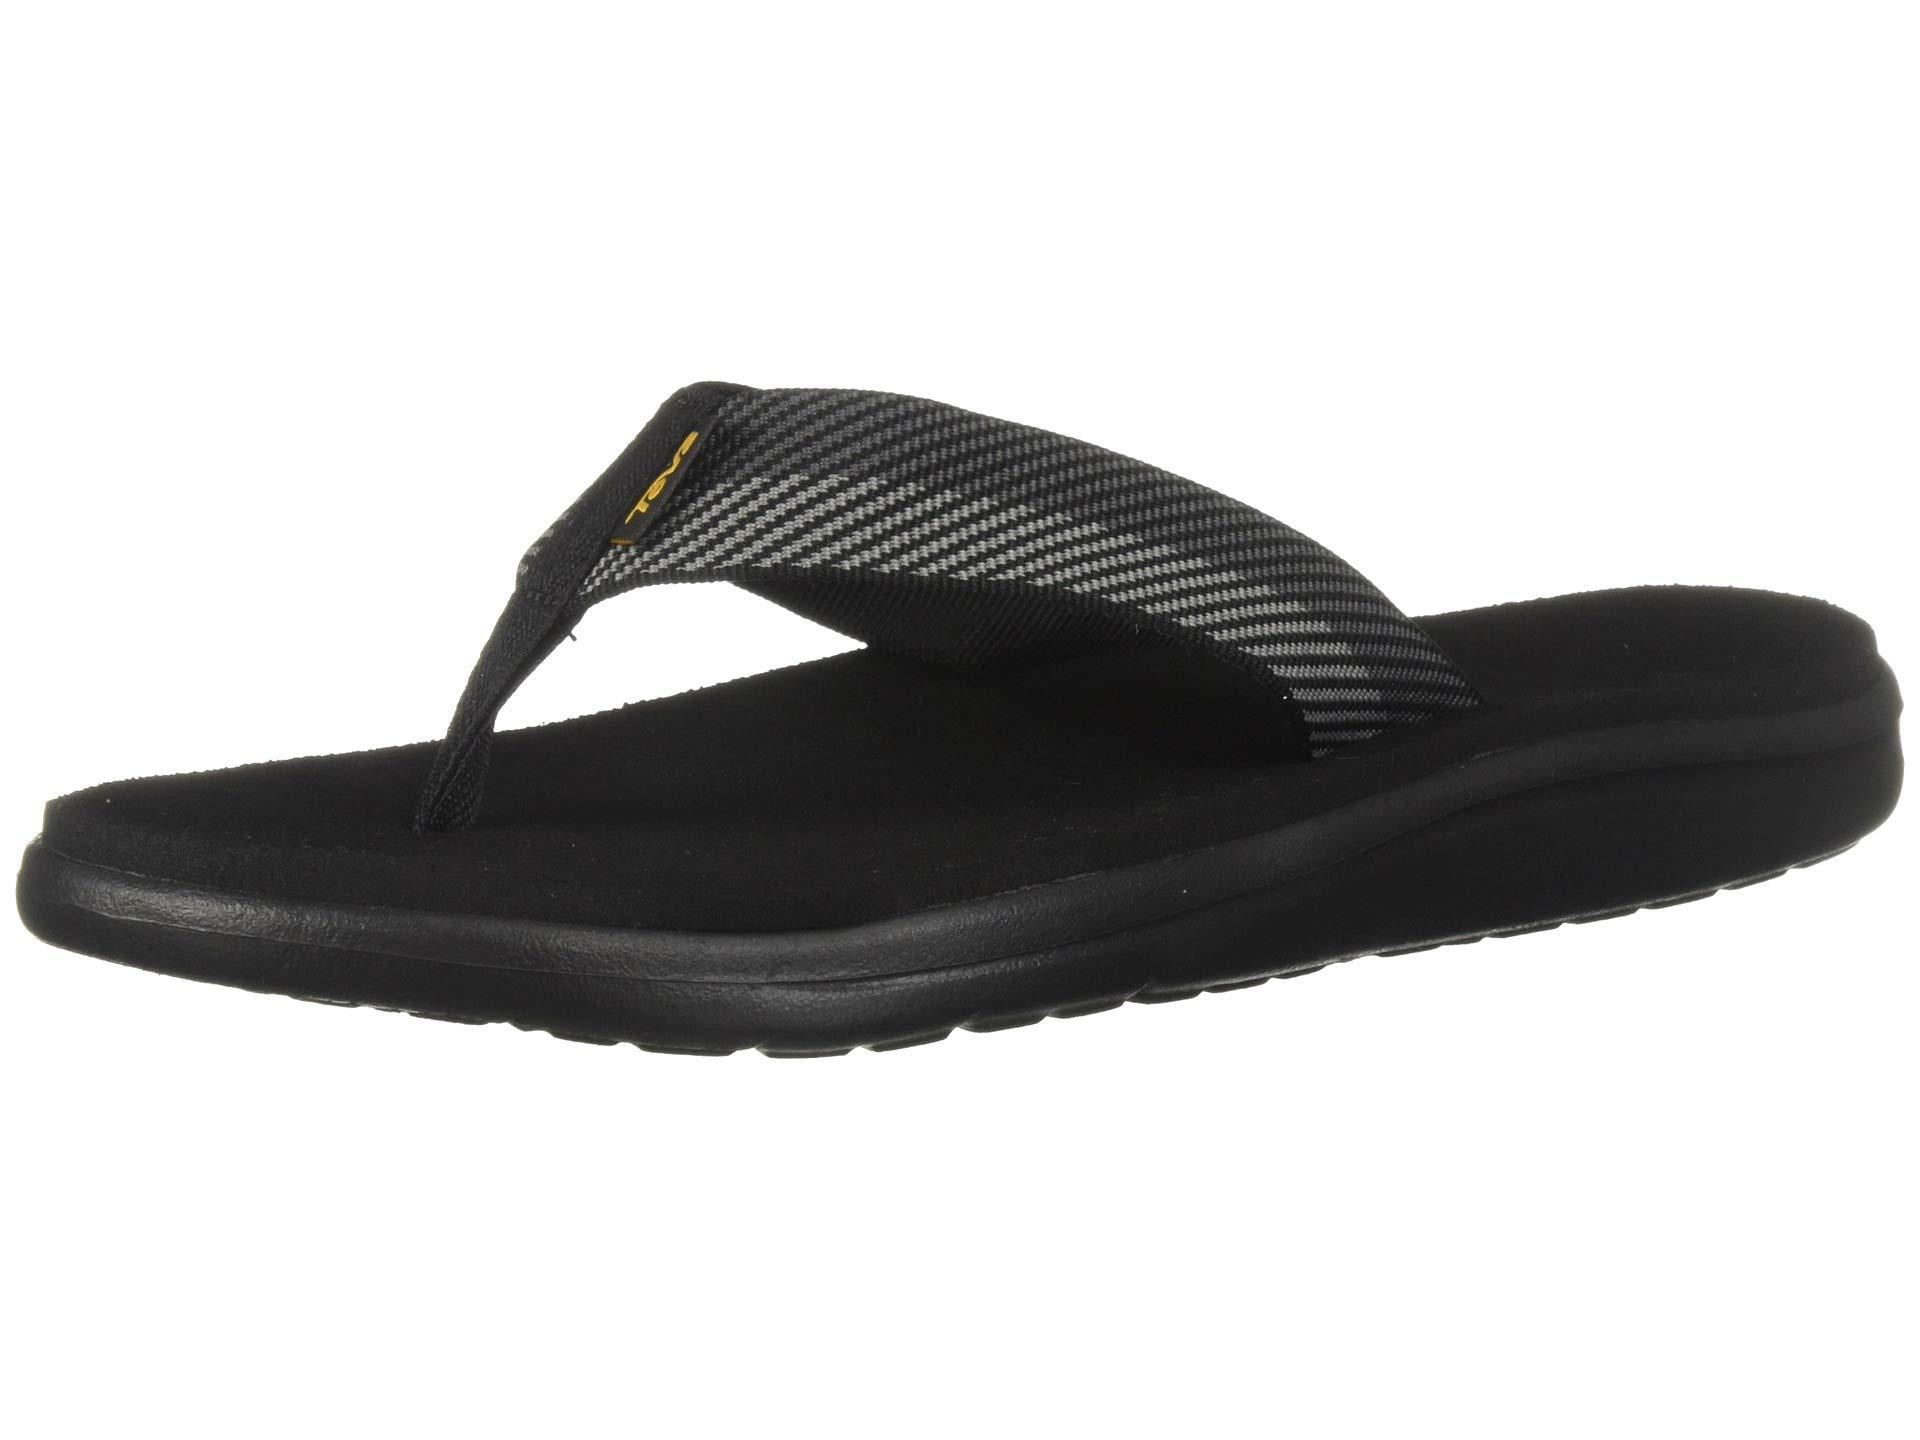 976f87468 Lyst - Teva Voya Flip (zook Black) Men s Sandals in Black for Men